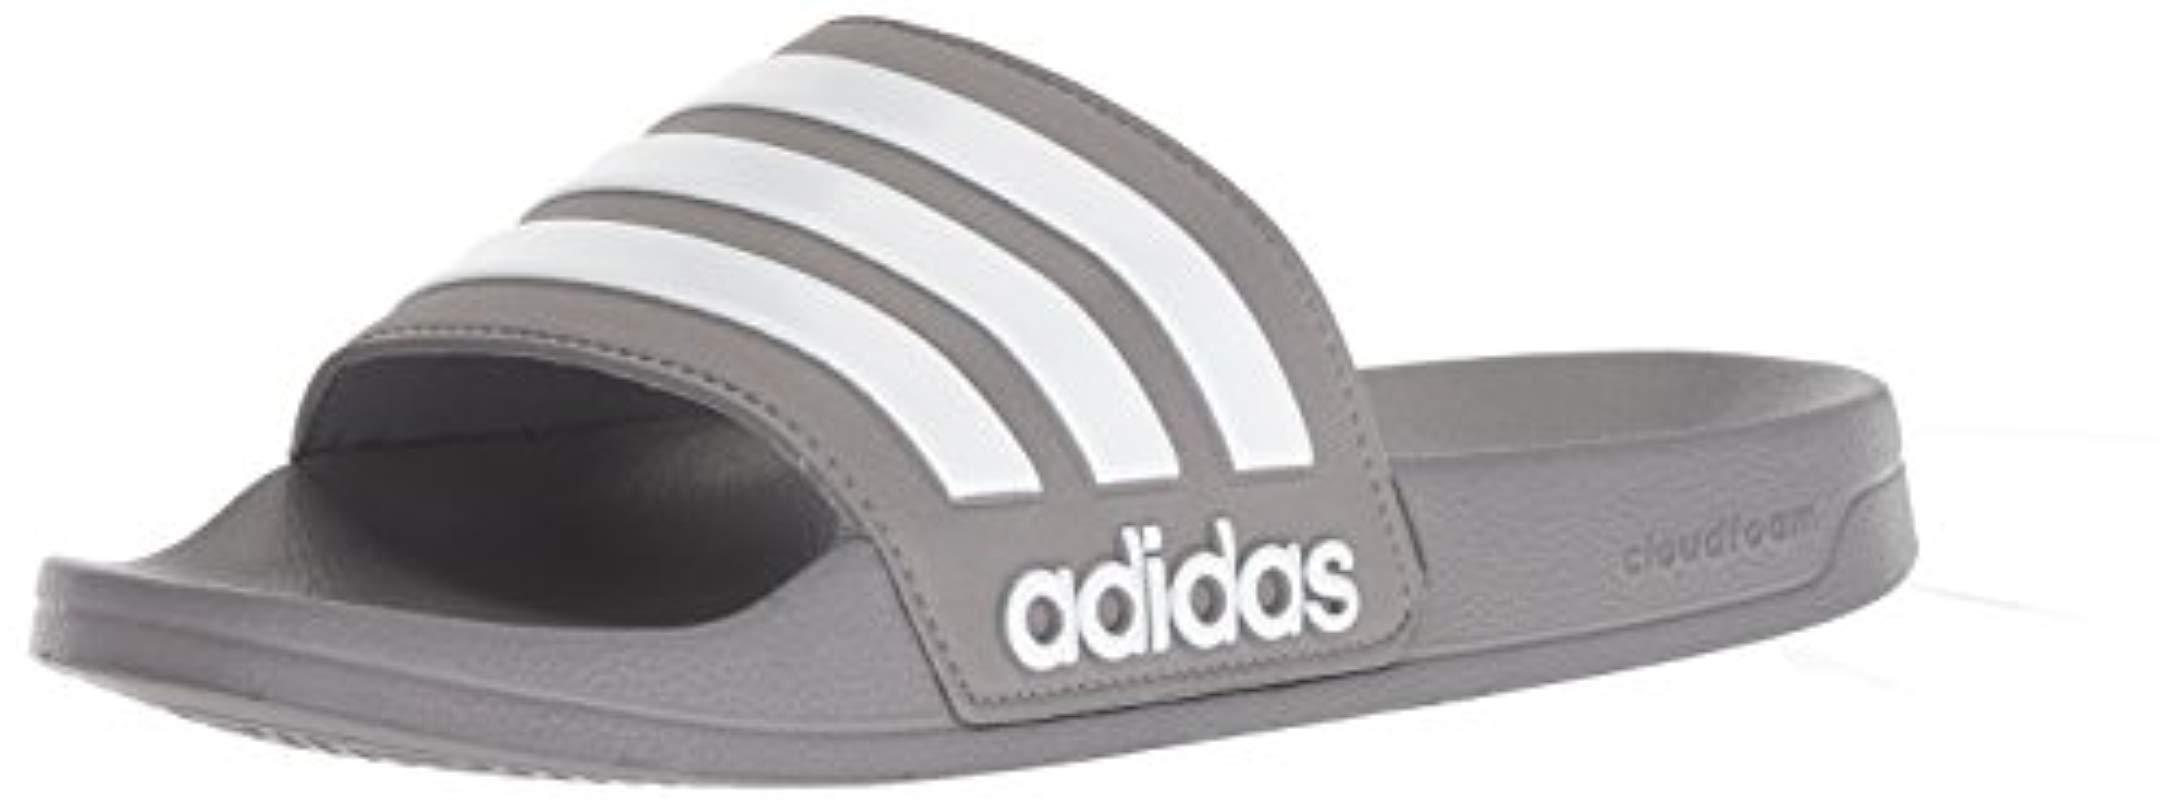 2821e40b8afc1 Lyst - adidas Originals Adilette Shower Slide Sandal in Gray for Men